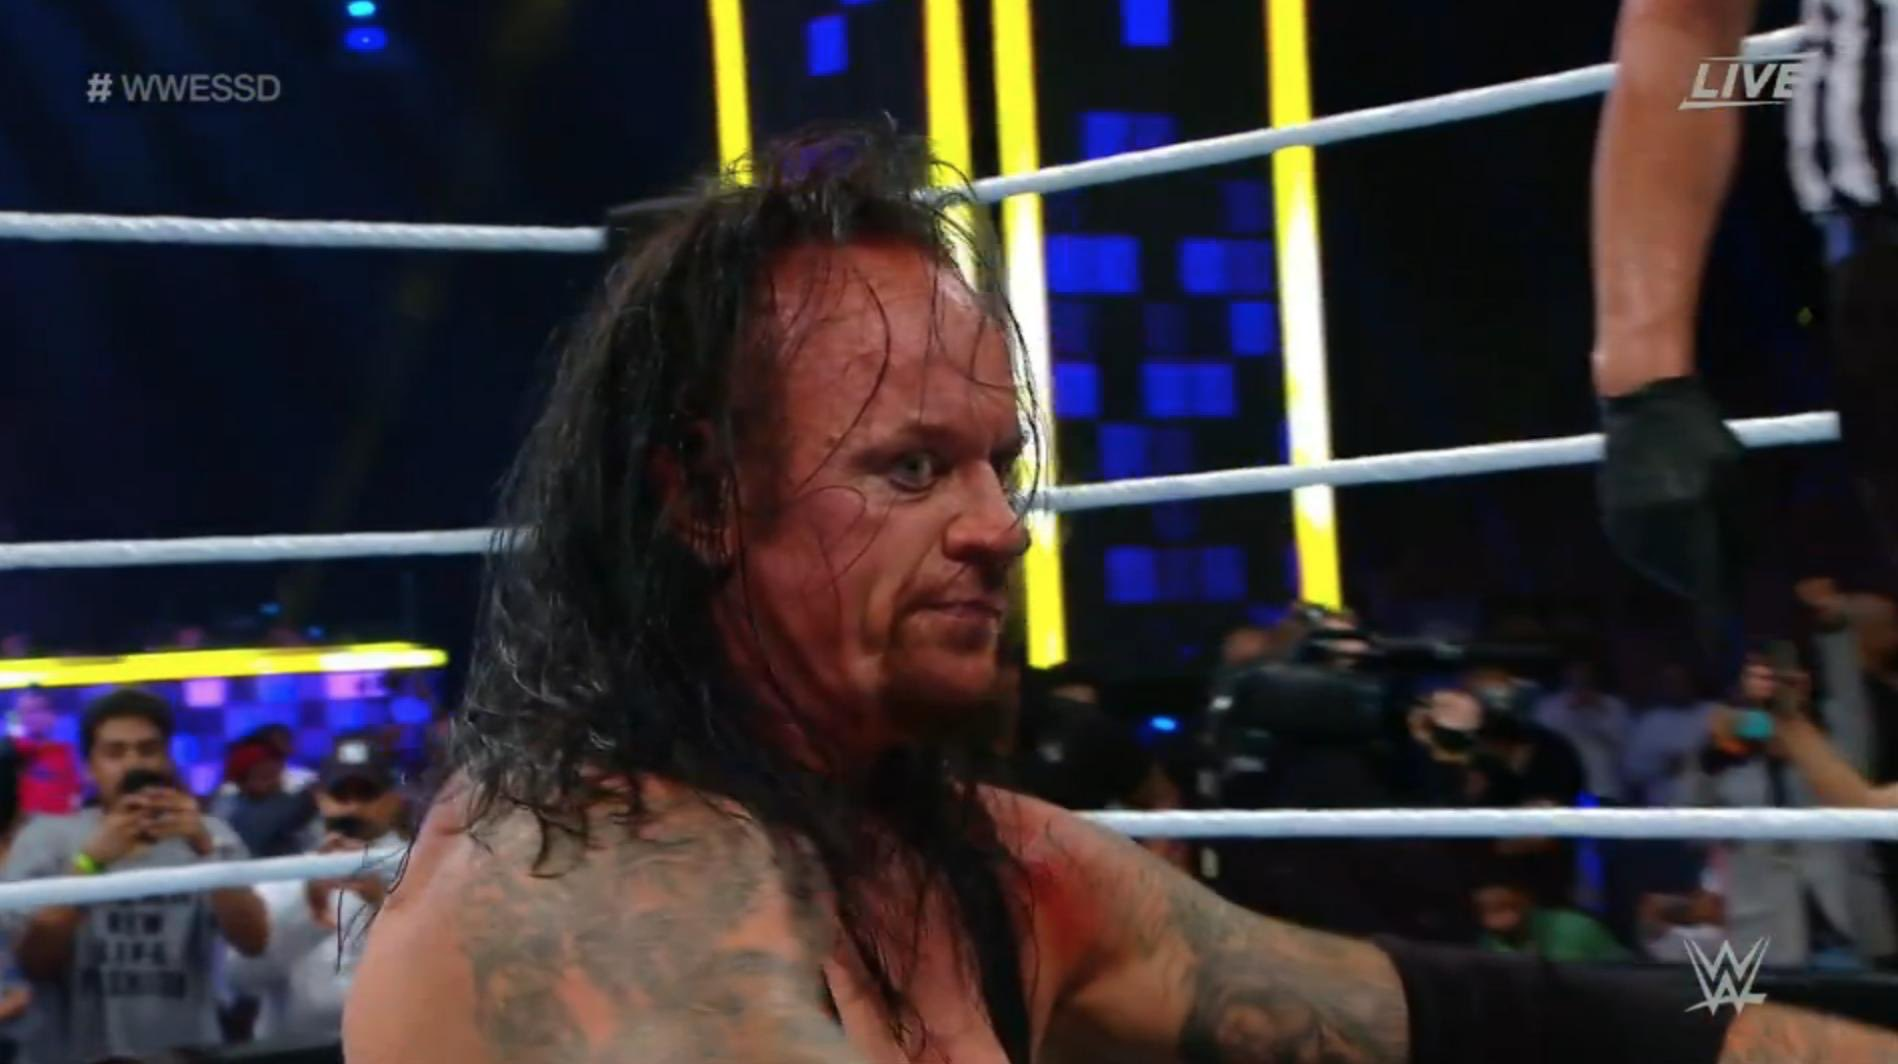 Undertaker vs. Goldberg was a fitting end to a show that shouldn't have happened